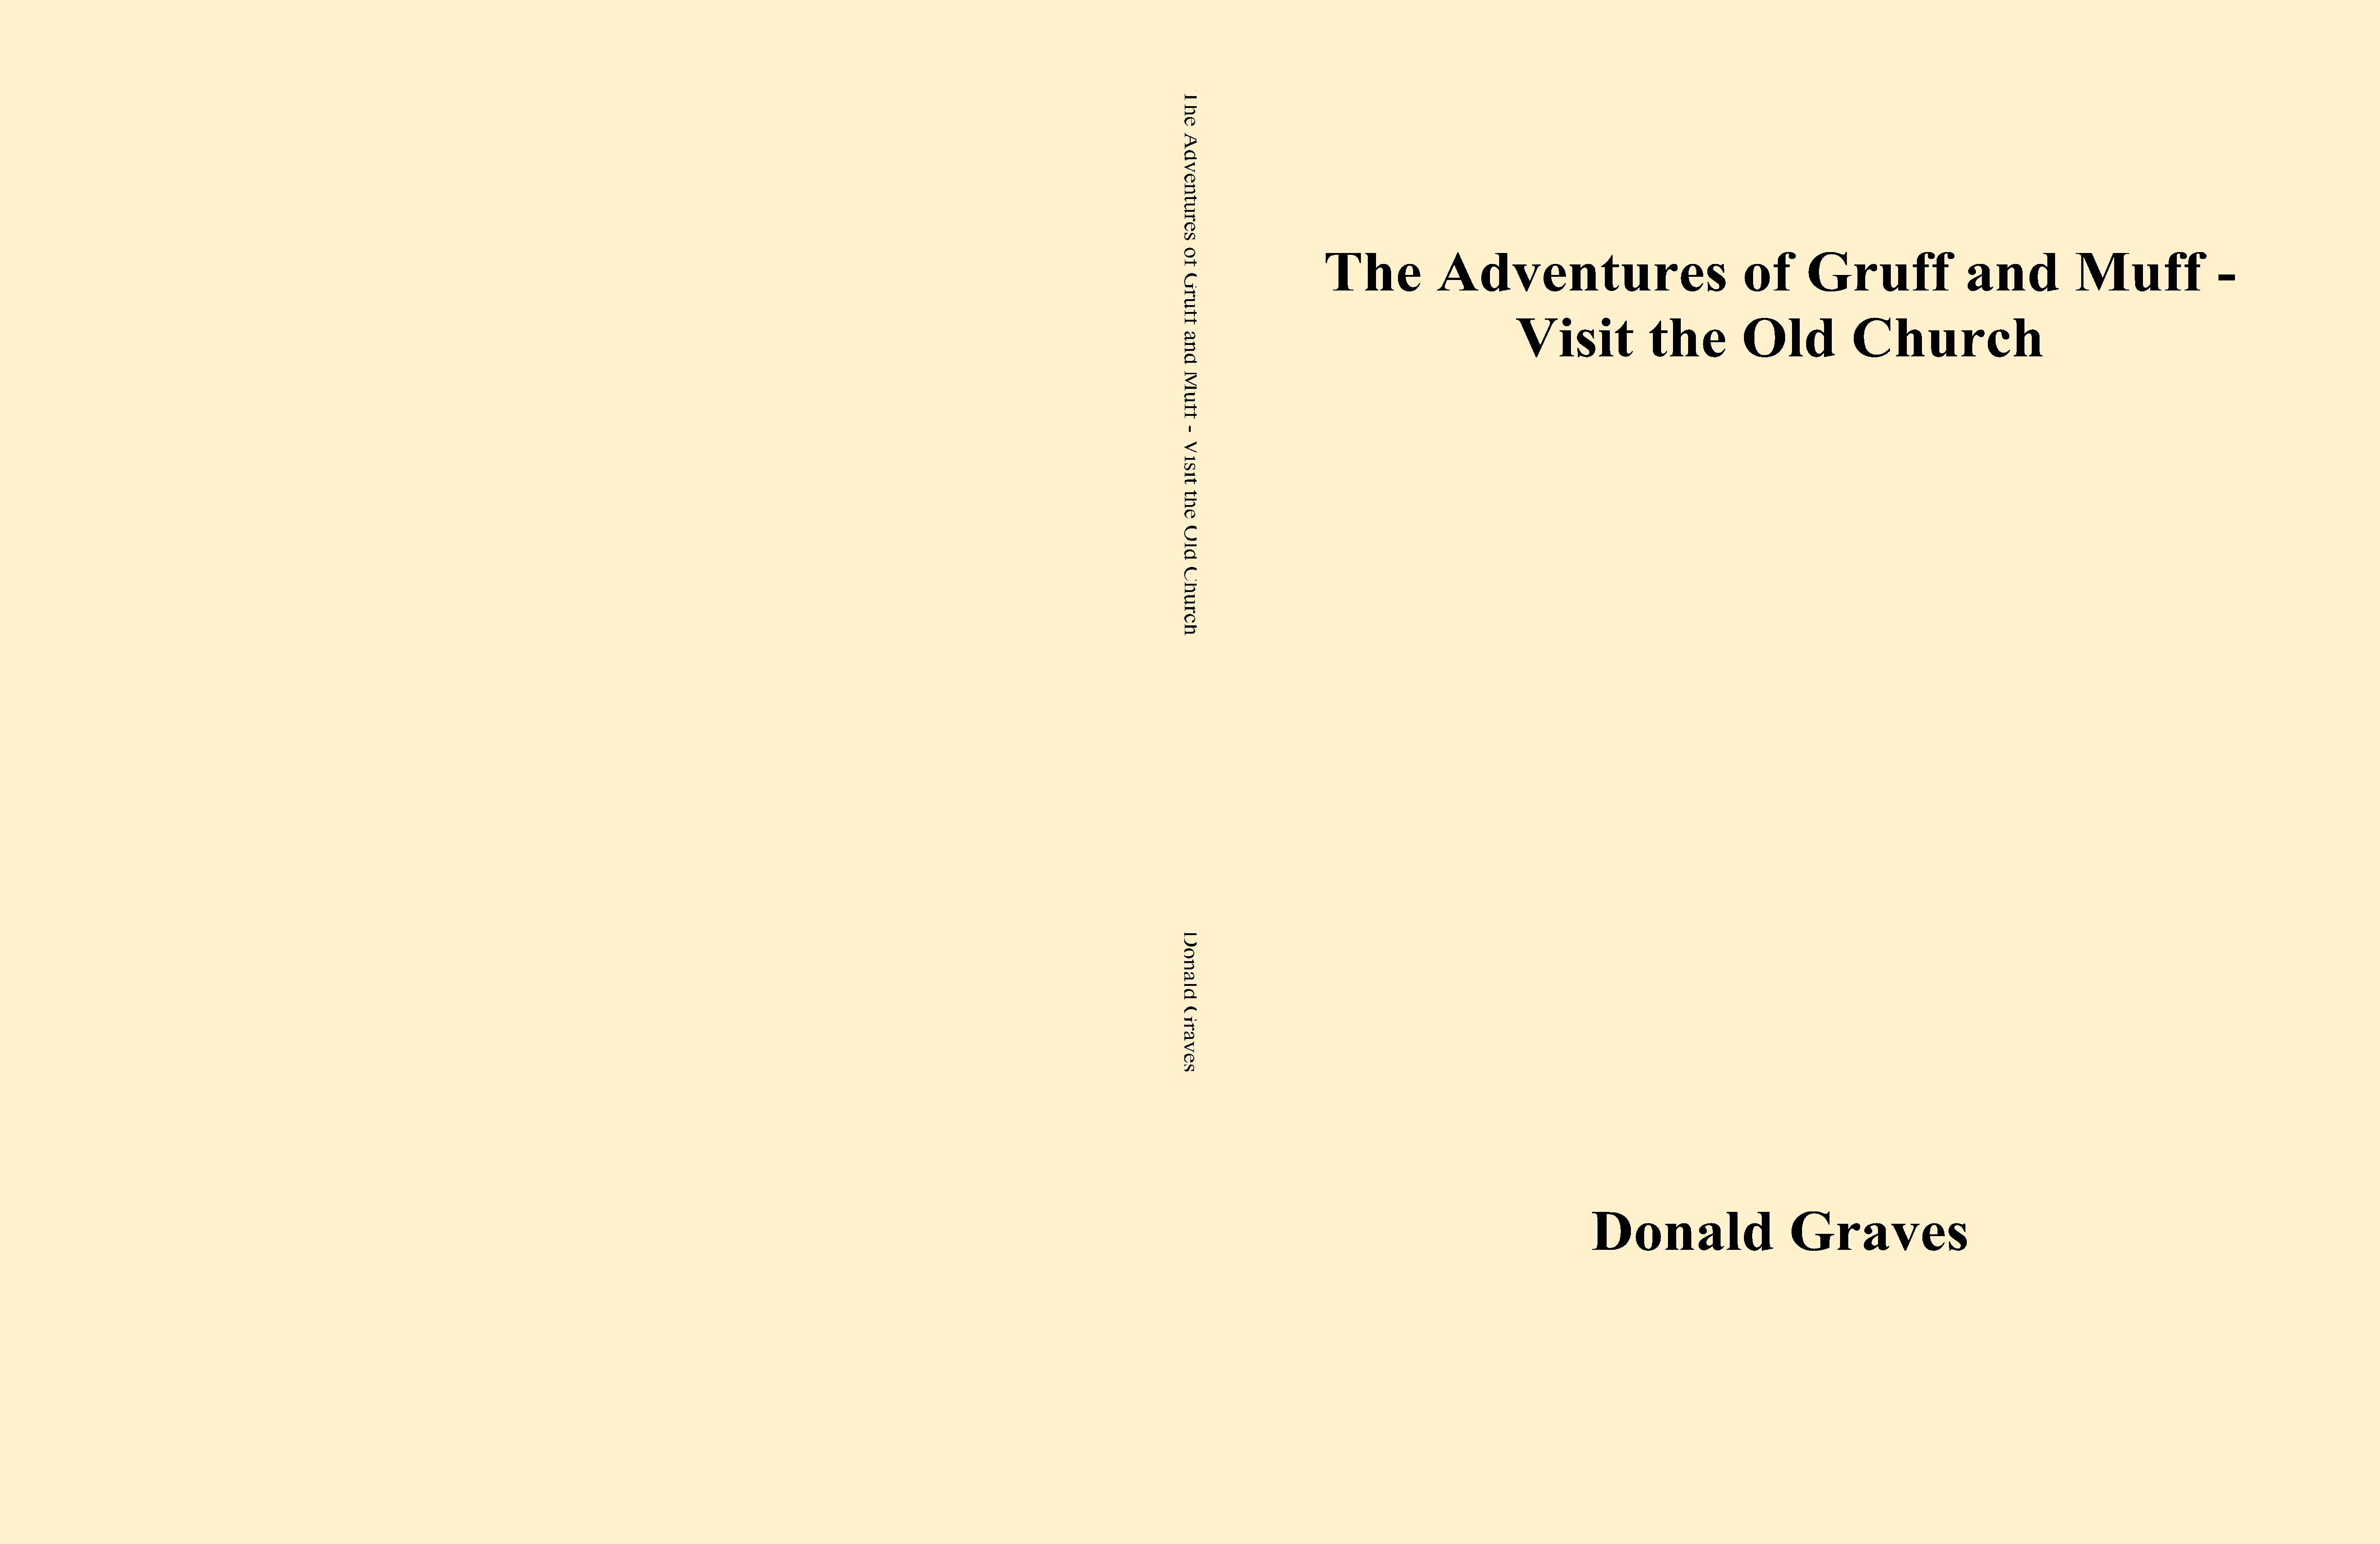 The Adventures of Gruff and Muff - Visit the Old Church cover image